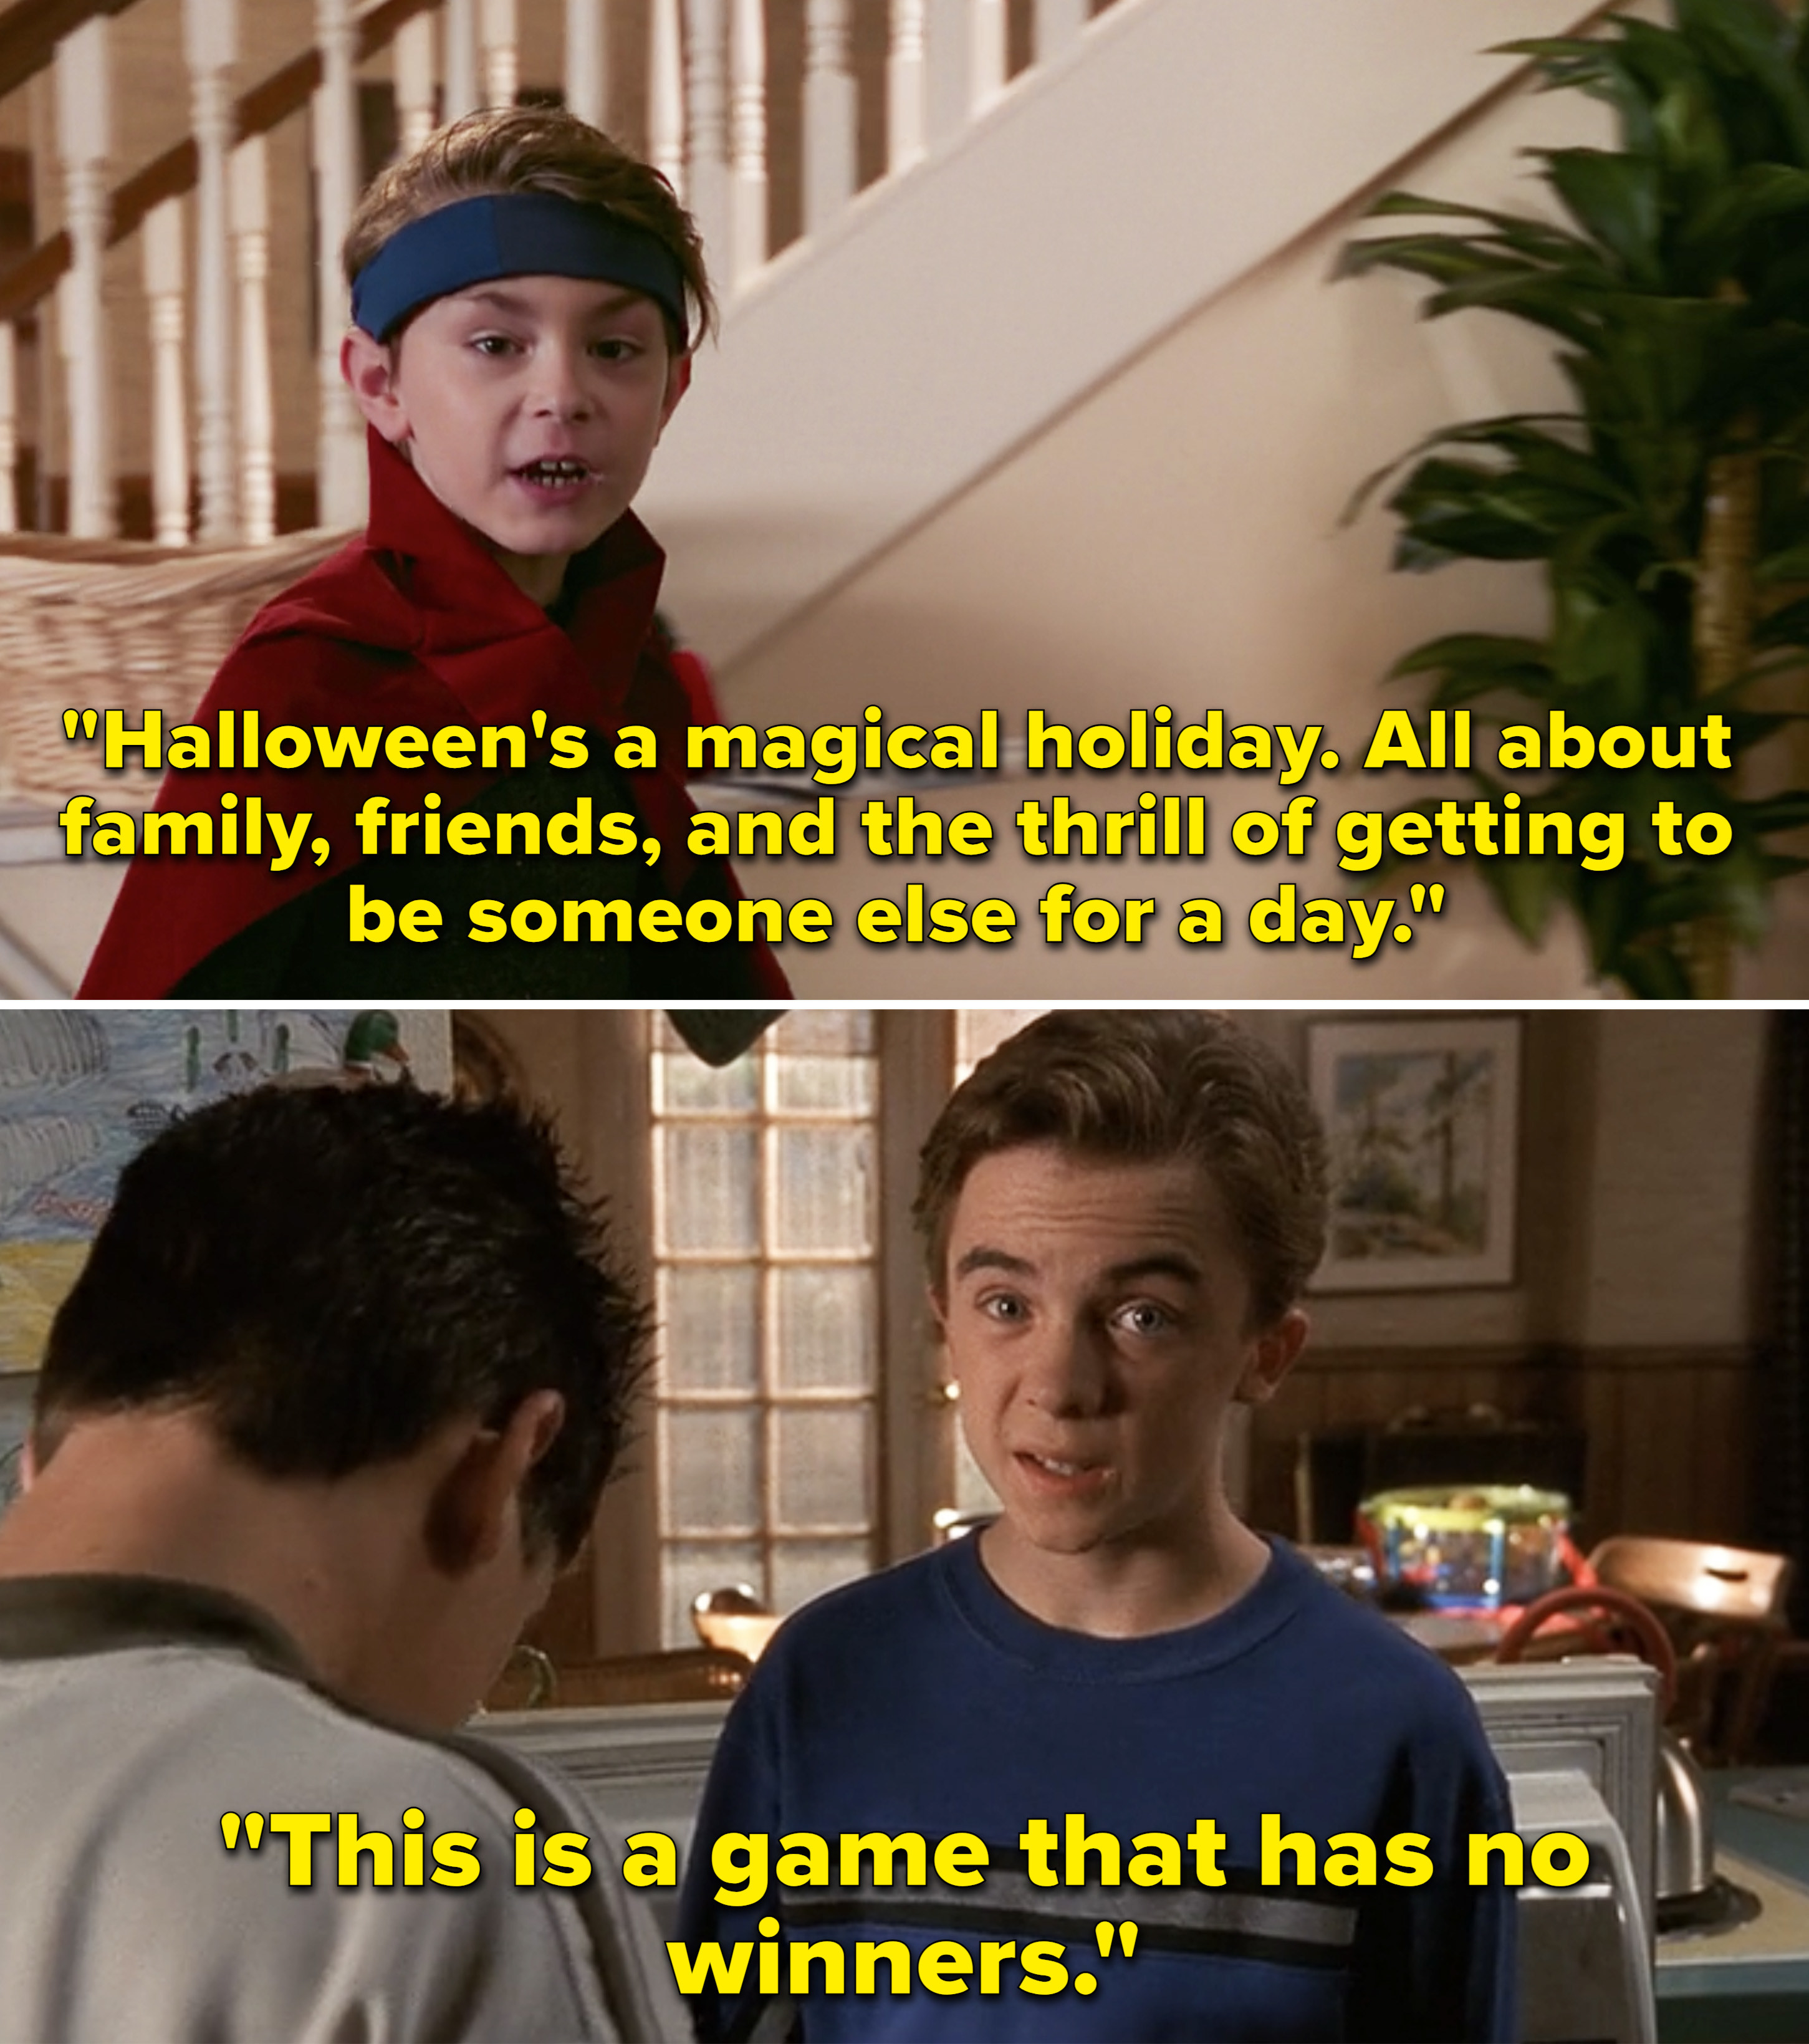 Billy saying how Halloween is a magical holiday while talking directly the camera